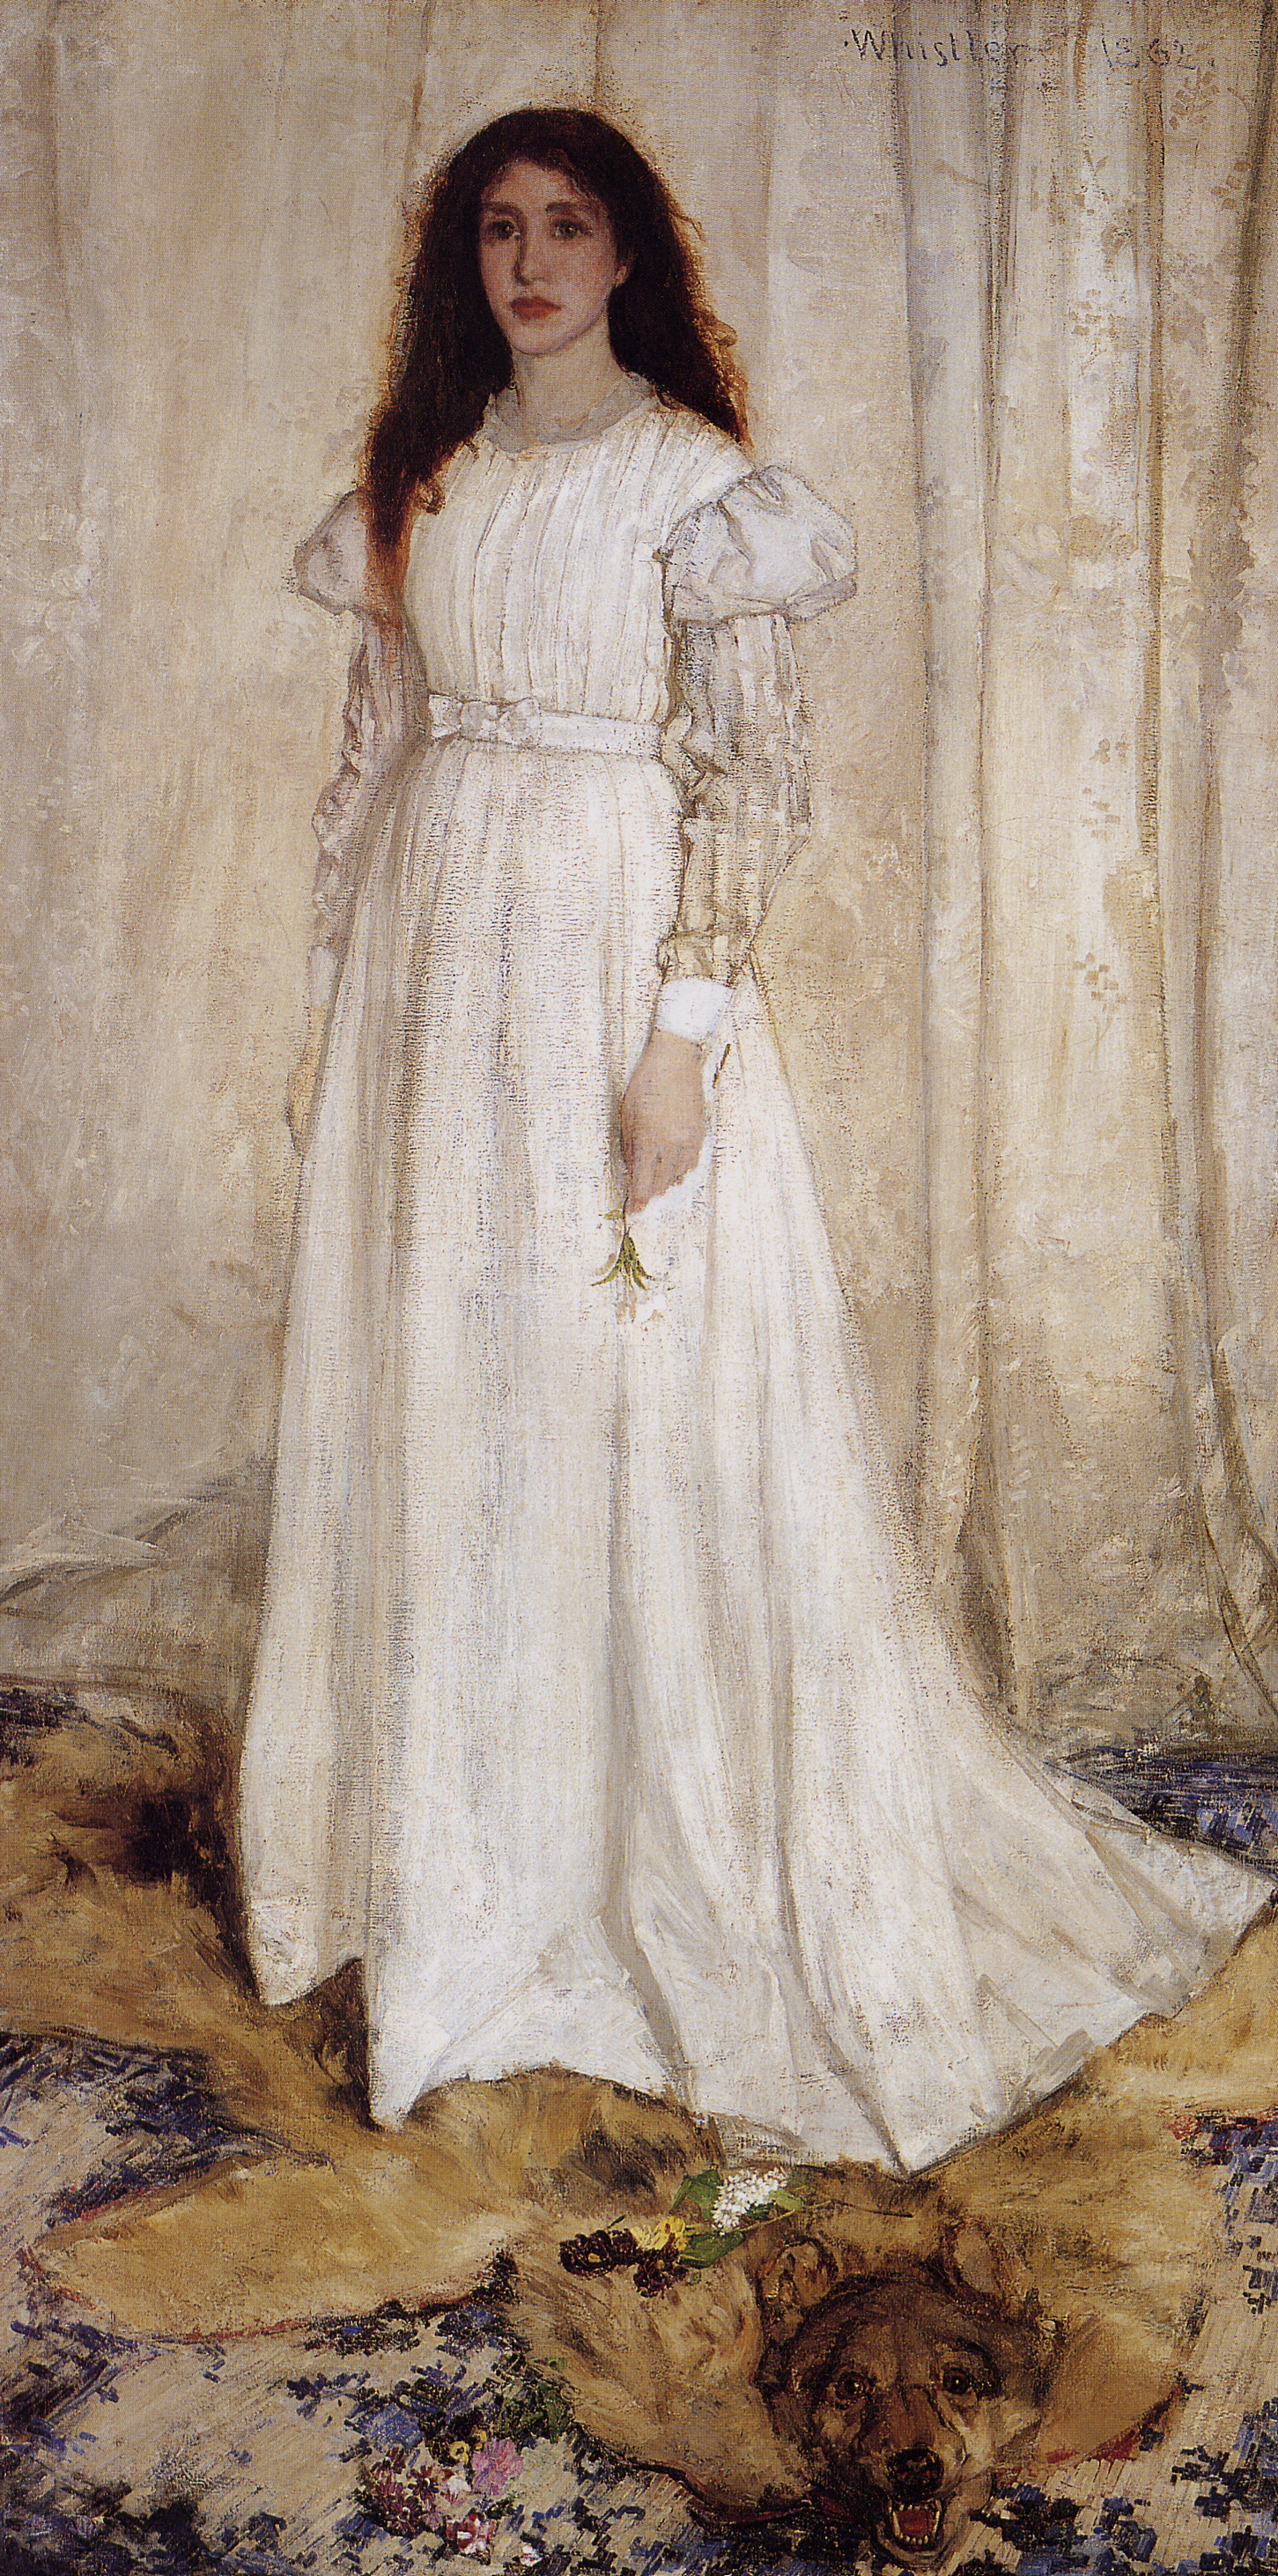 James Whistler Symphony in White no 1 The White Girl 1862